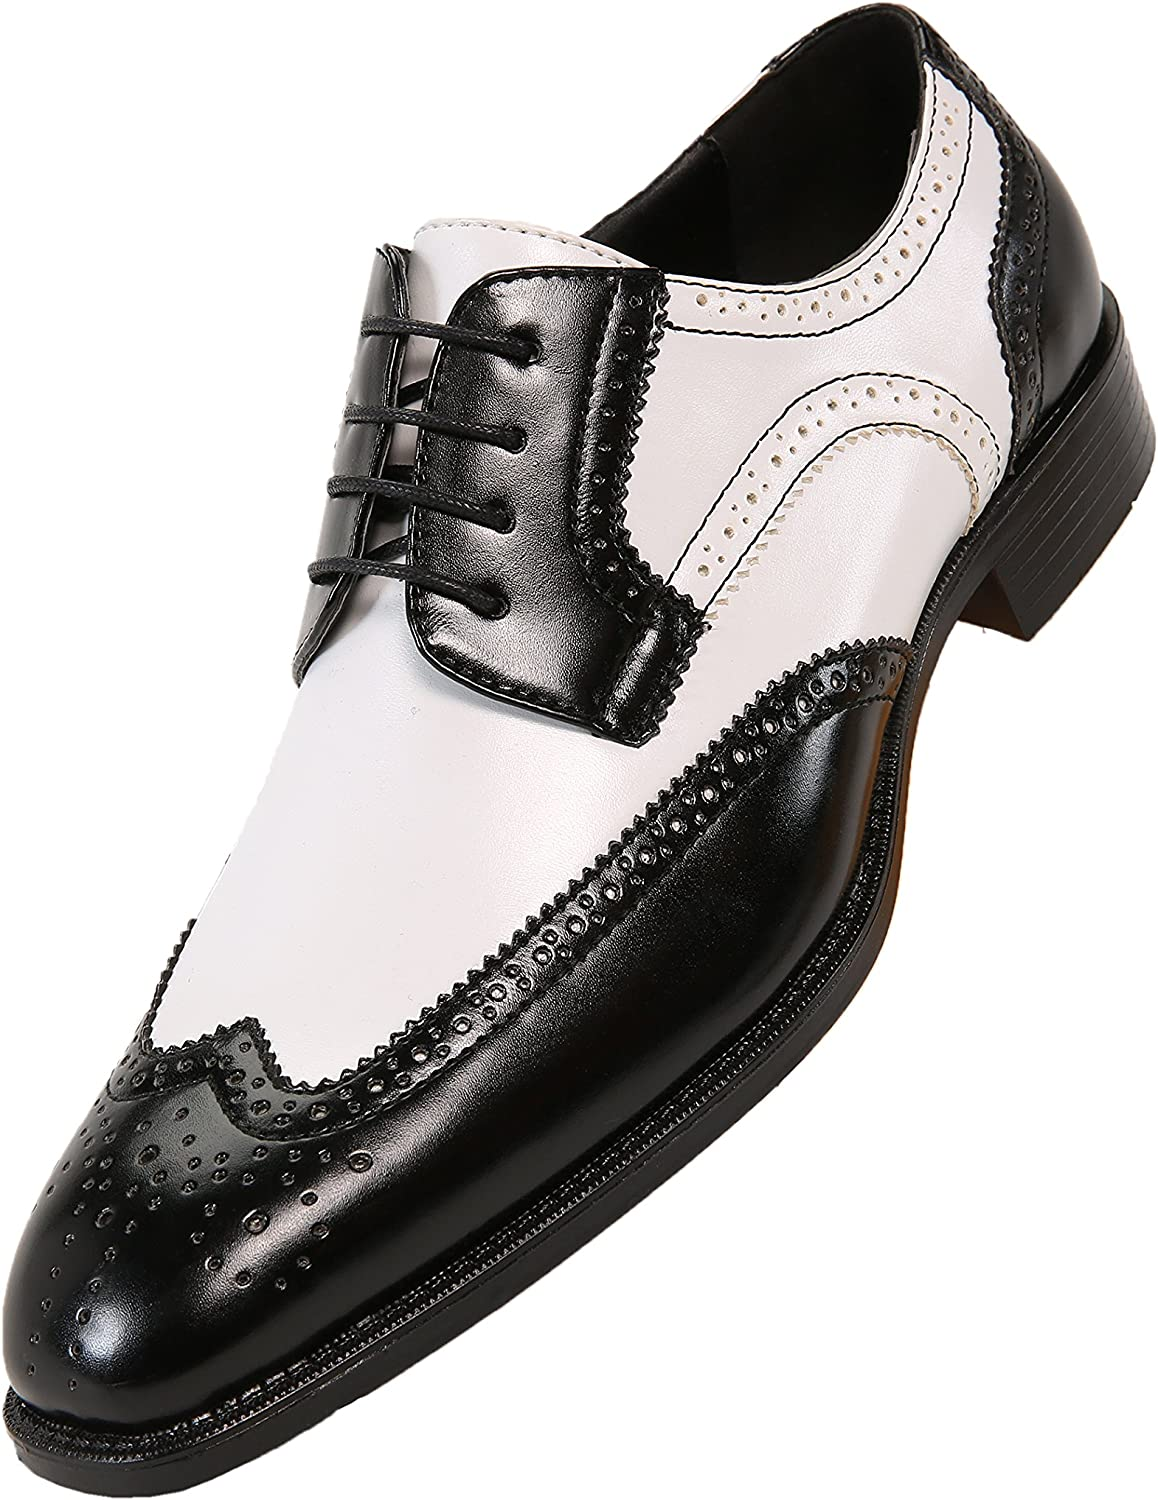 Bolano Elwyn, Mens Shoes Mens Dress Shoes Oxford Shoes for Men Wingtip Shoes Men Formal Shoes, Spectator Two Tone, Lace up, Brogue, Dress